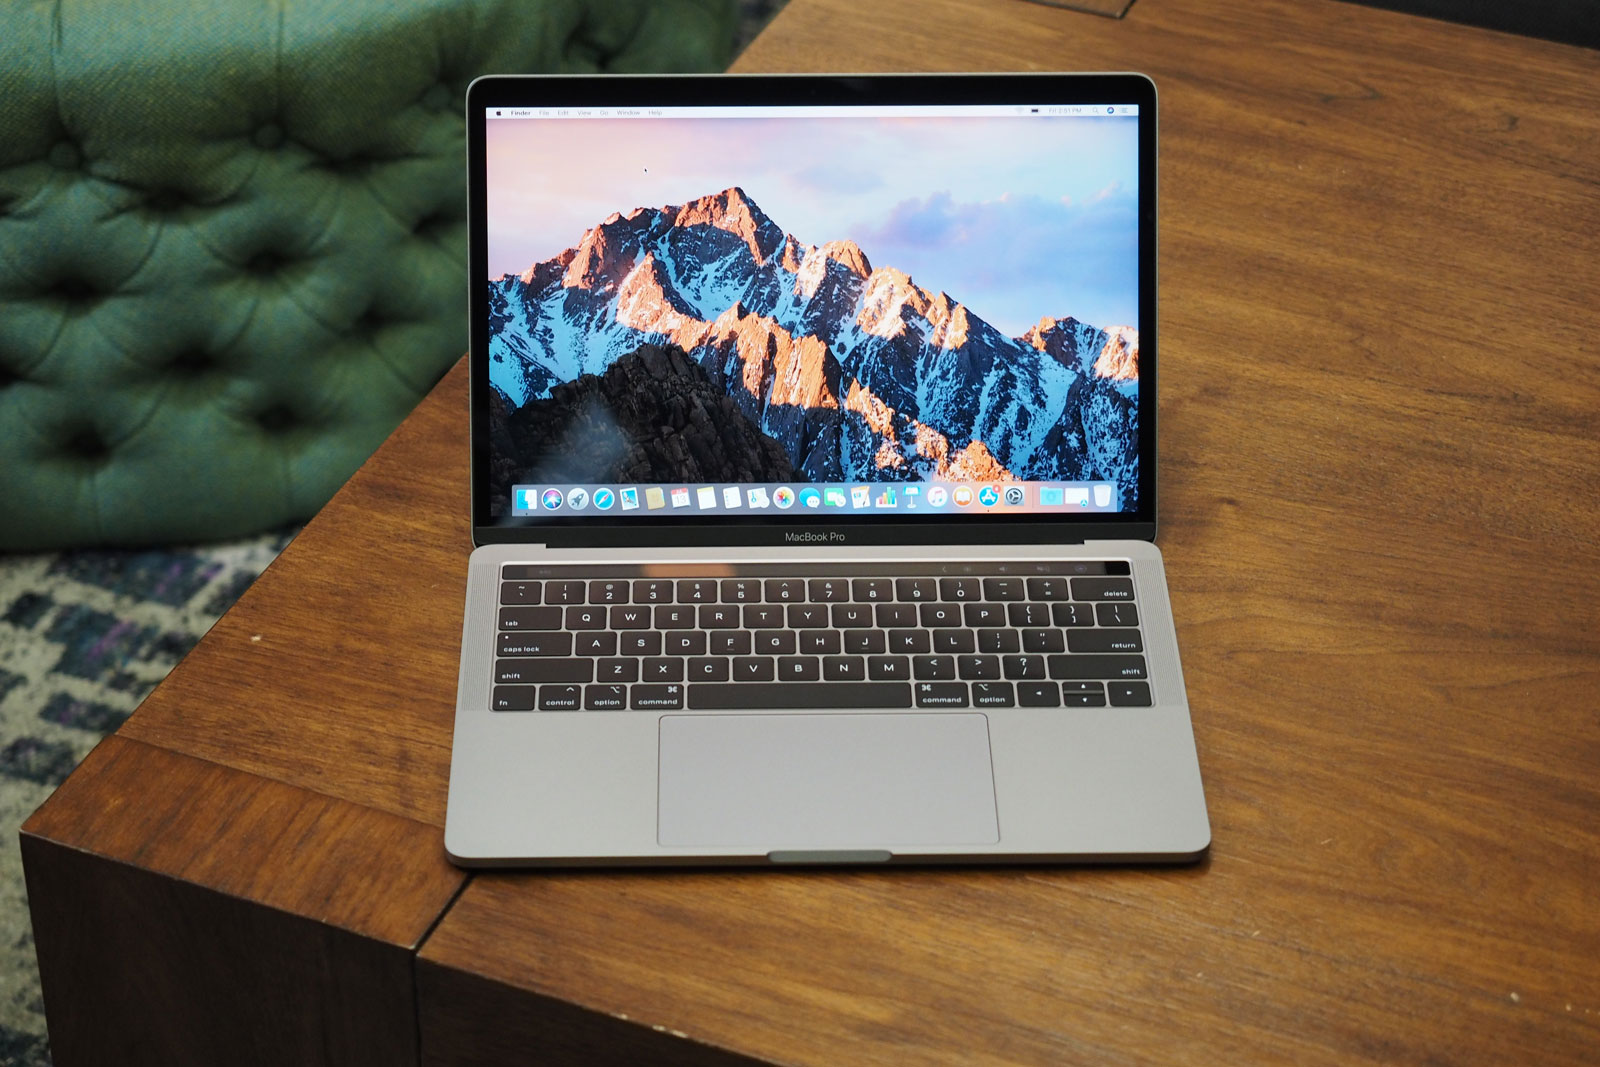 Macbook pro 2018 hands on quieter keyboard 39 hey siri How to clean the exterior of a macbook pro